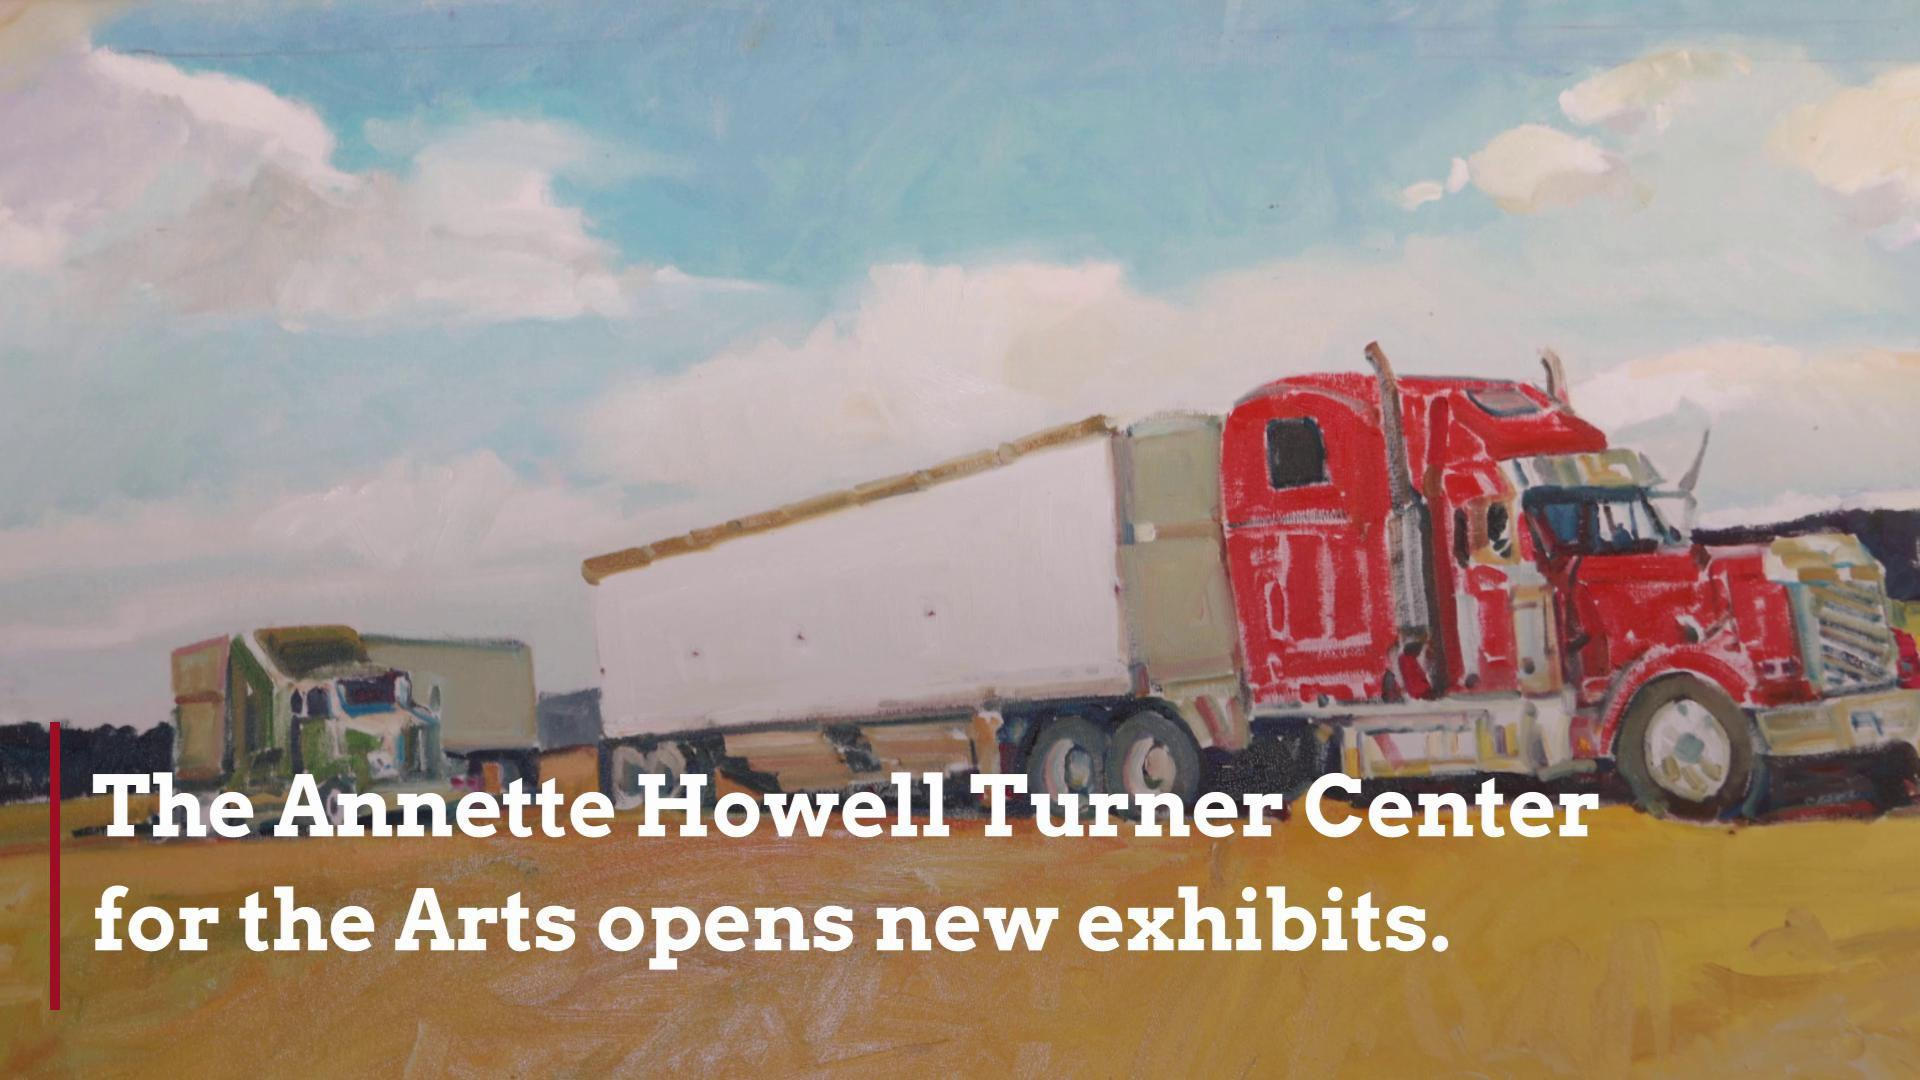 The Turner Center's new art exhibits